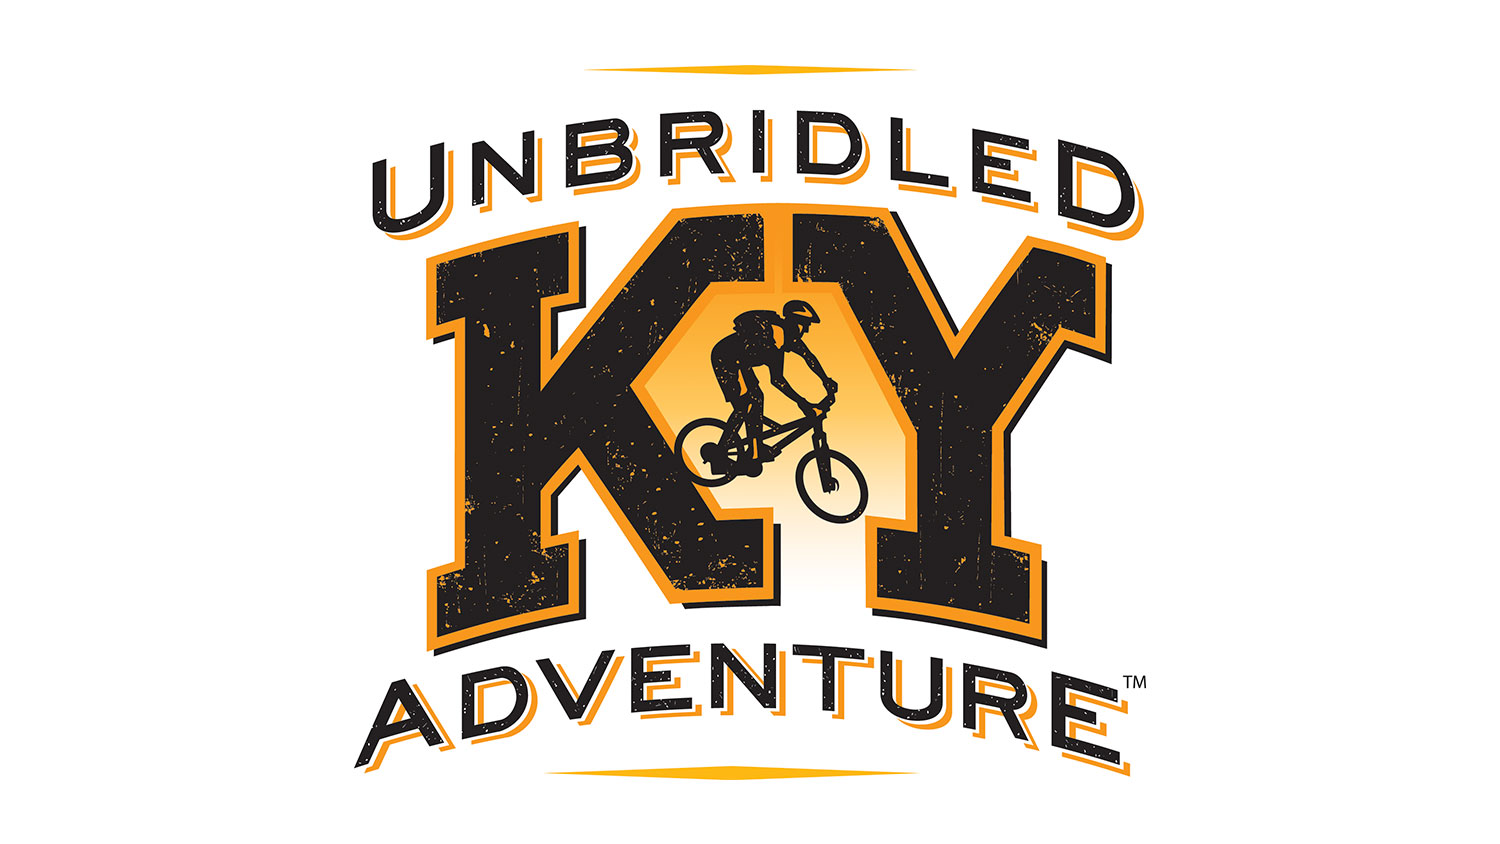 Kentucky Unbridled Adventure